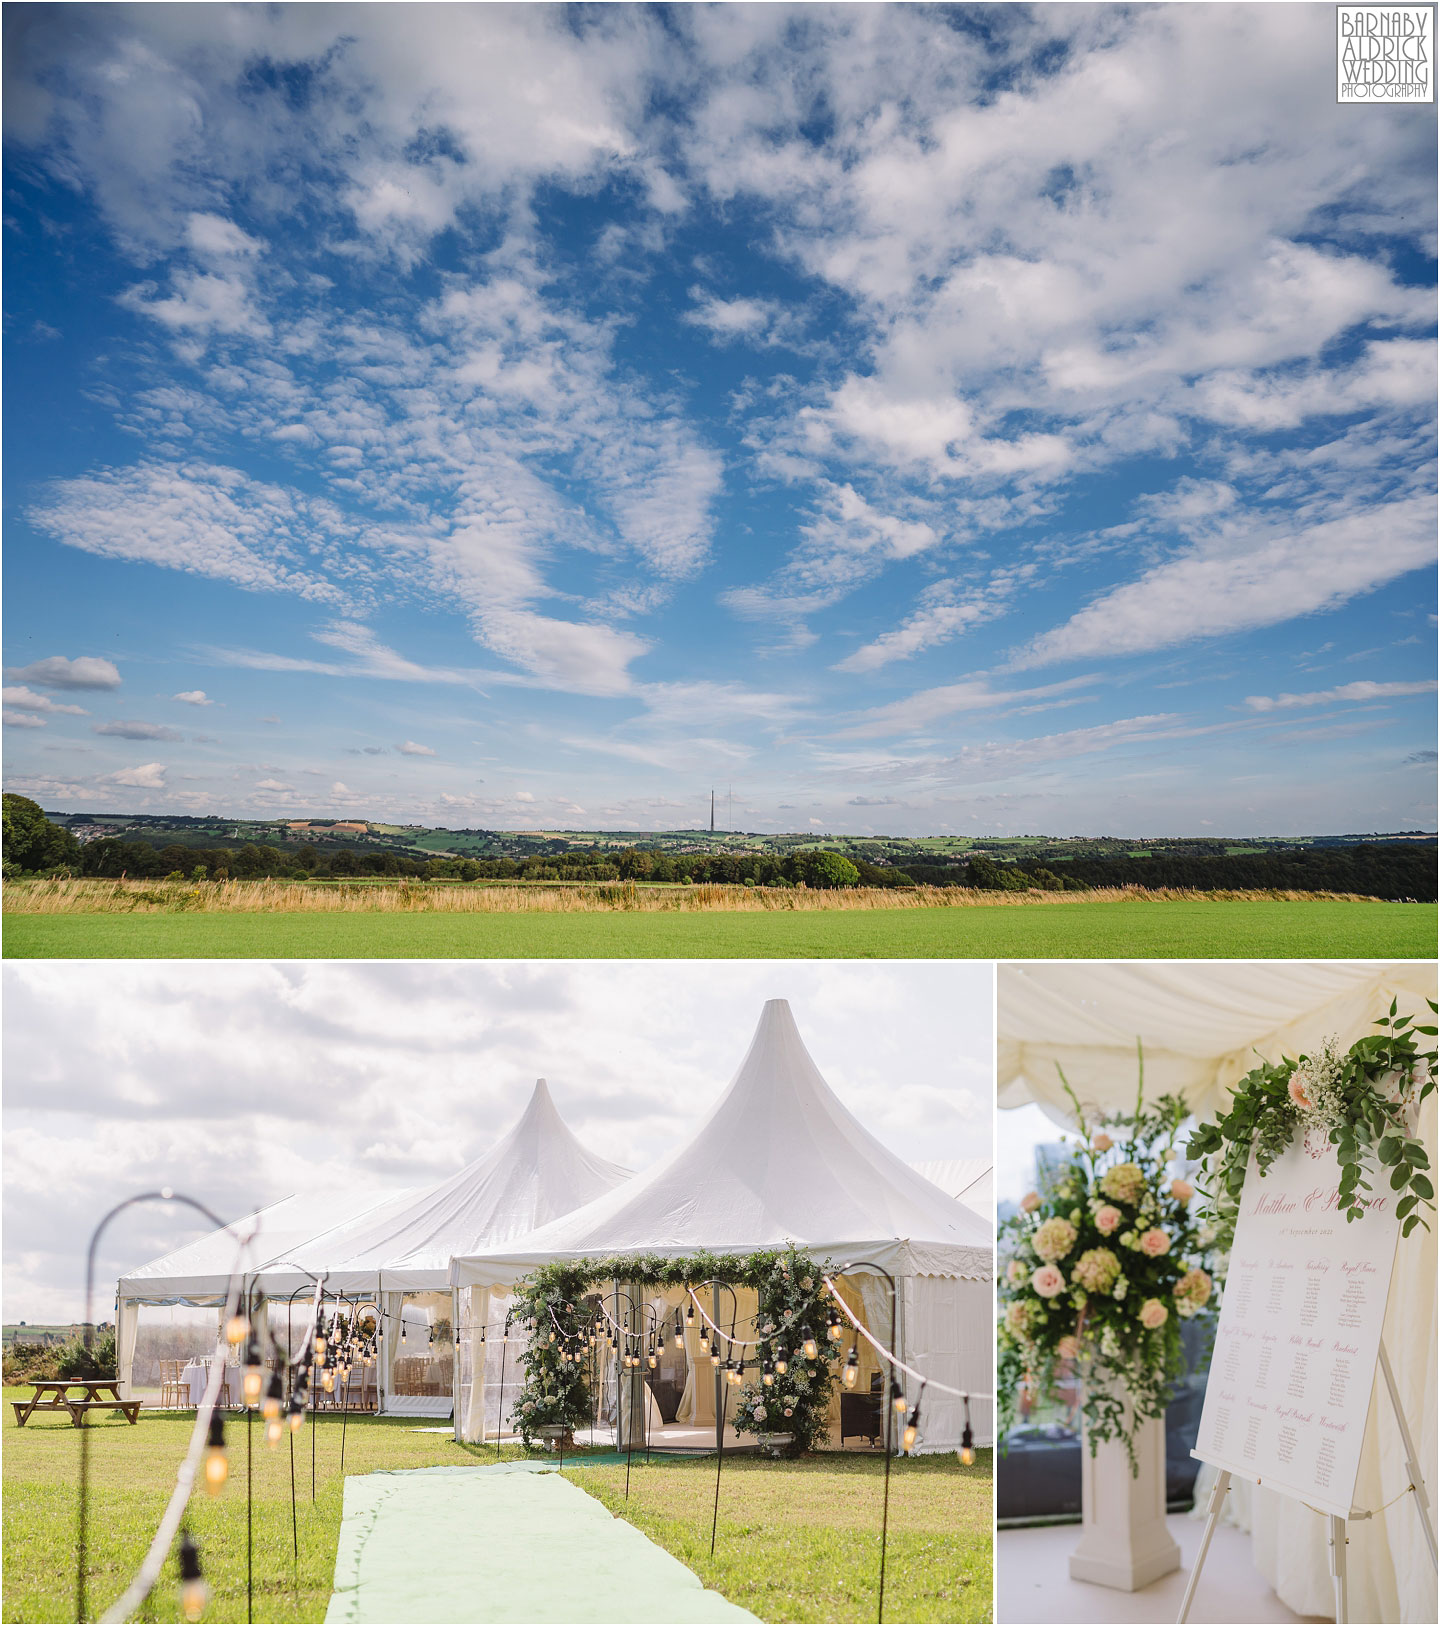 Yorkshire field Marquee Wedding, Field Marquee Wedding Photos, Yorkshire Marquee hire, Marquee wedding Photography, James Dabbs & Co Marquee Hire